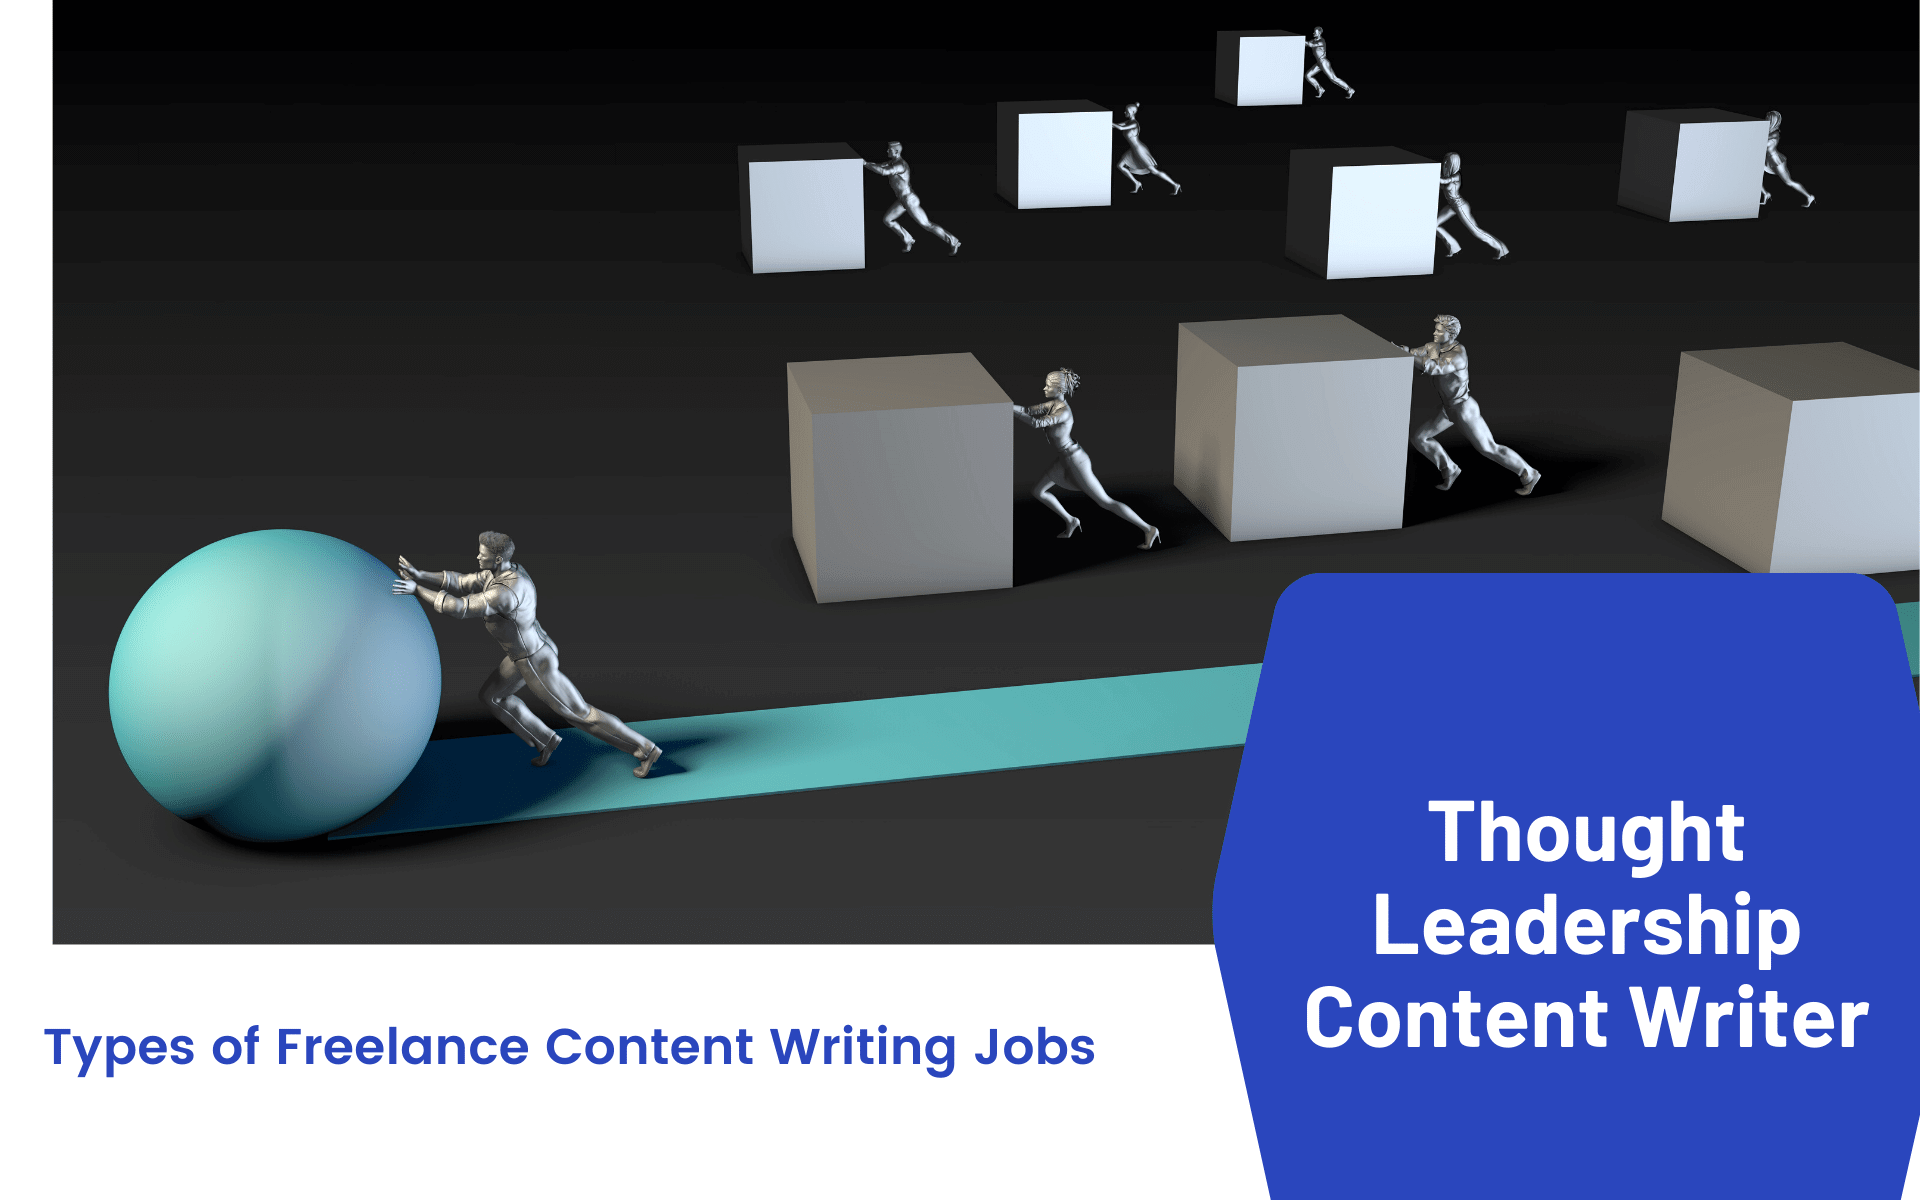 Thought Leadership Content Writer